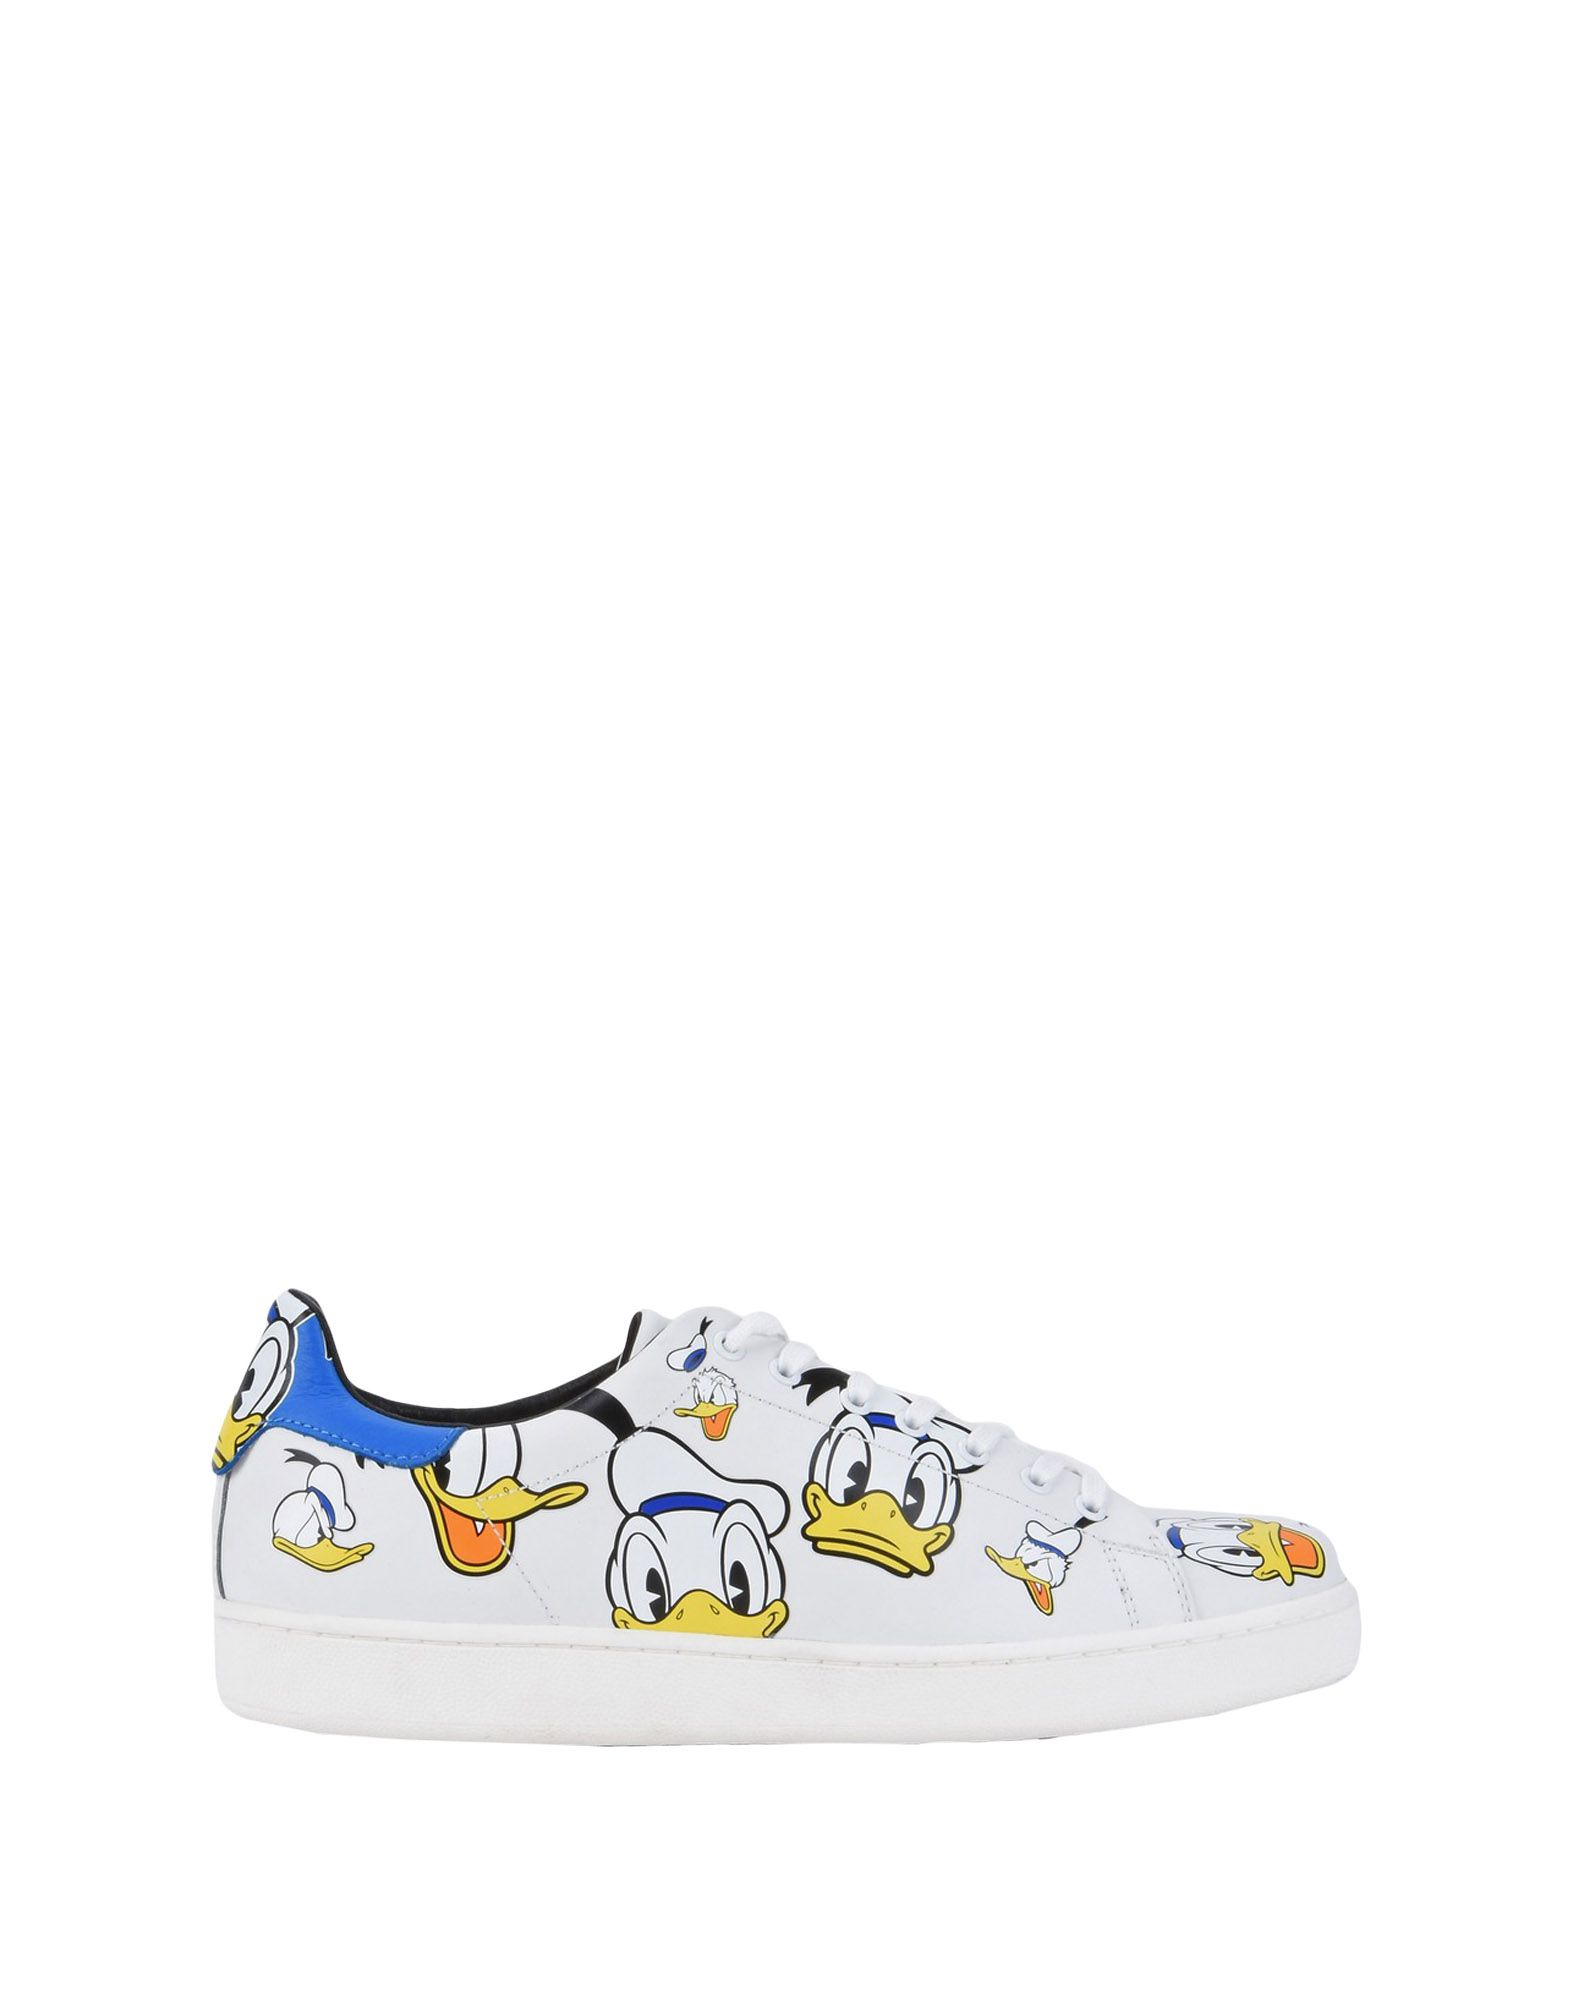 Sneakers Moa Master Of Arts Disney Collection - Homme - Sneakers Moa Master Of Arts sur